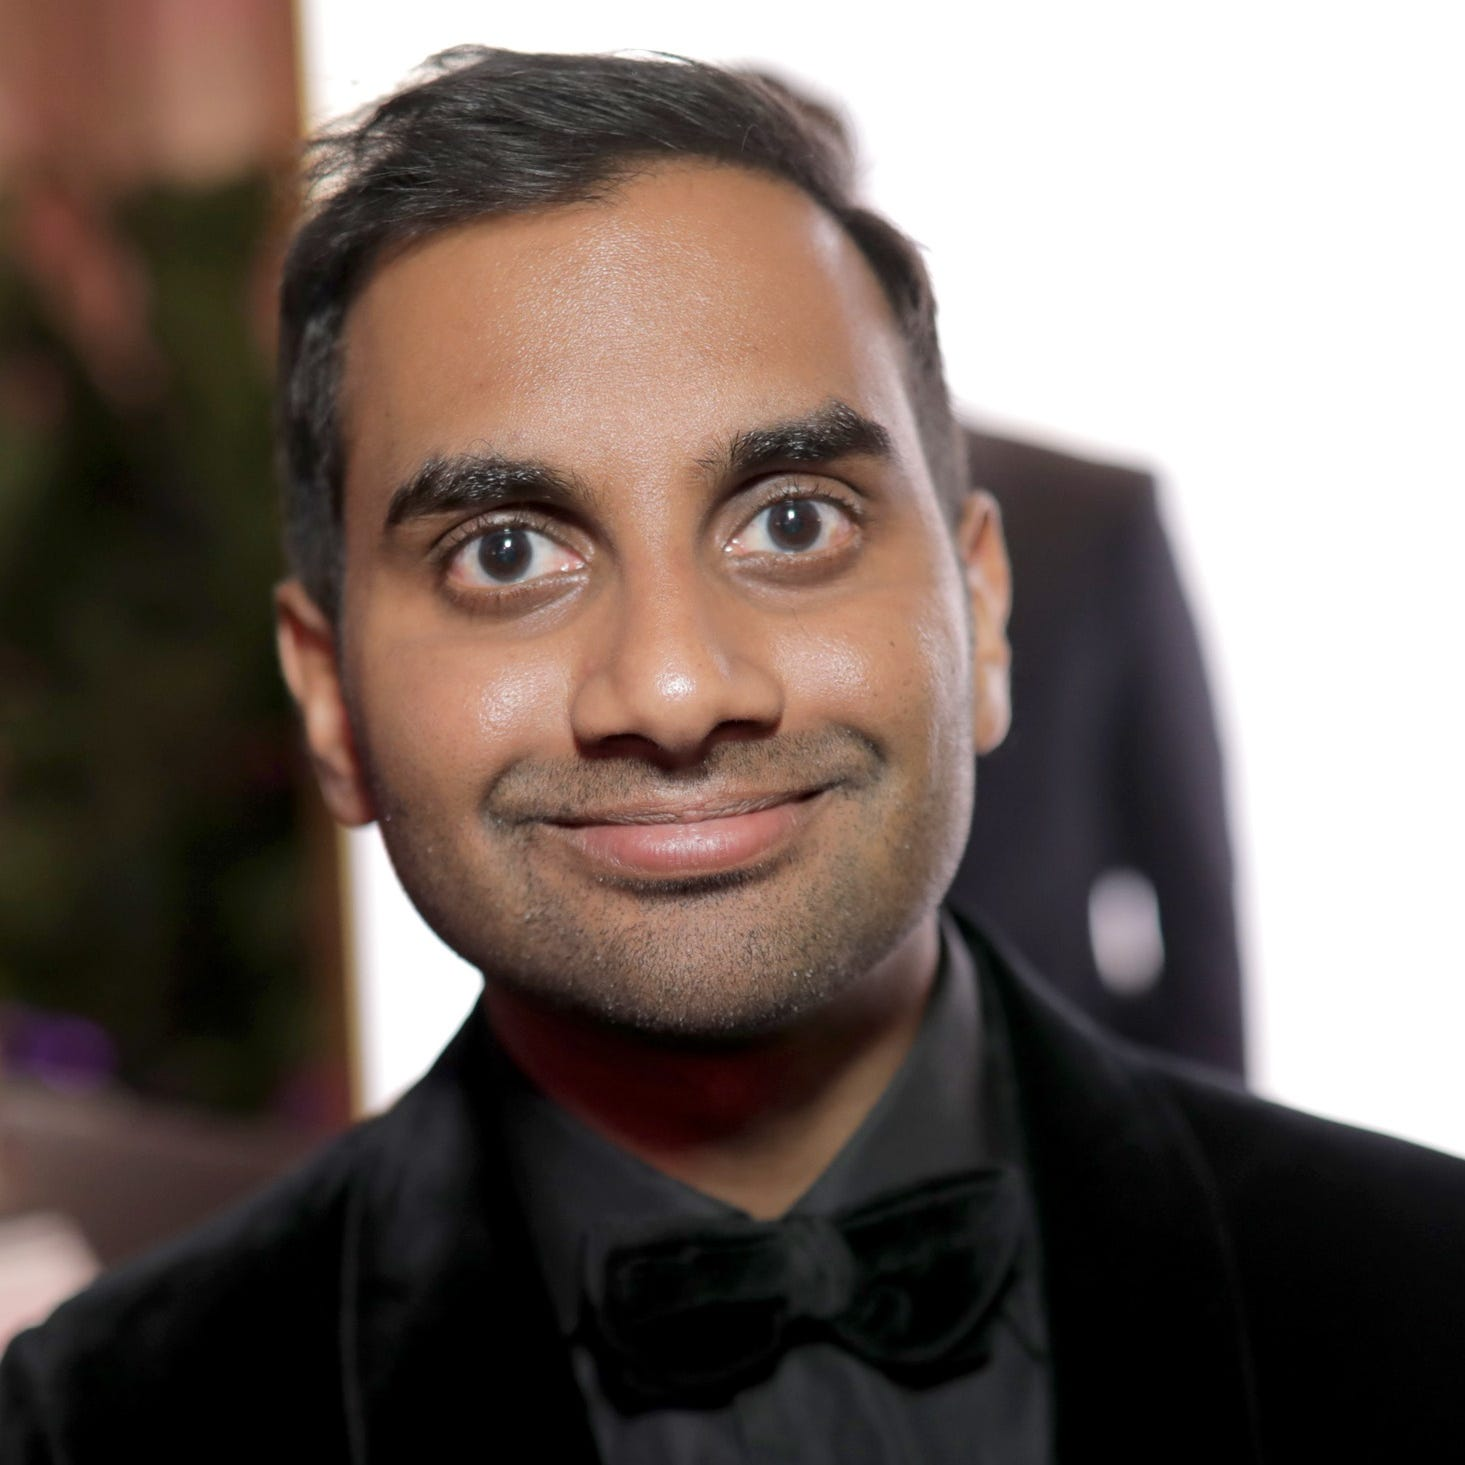 Aziz Ansari at UPAC canceled